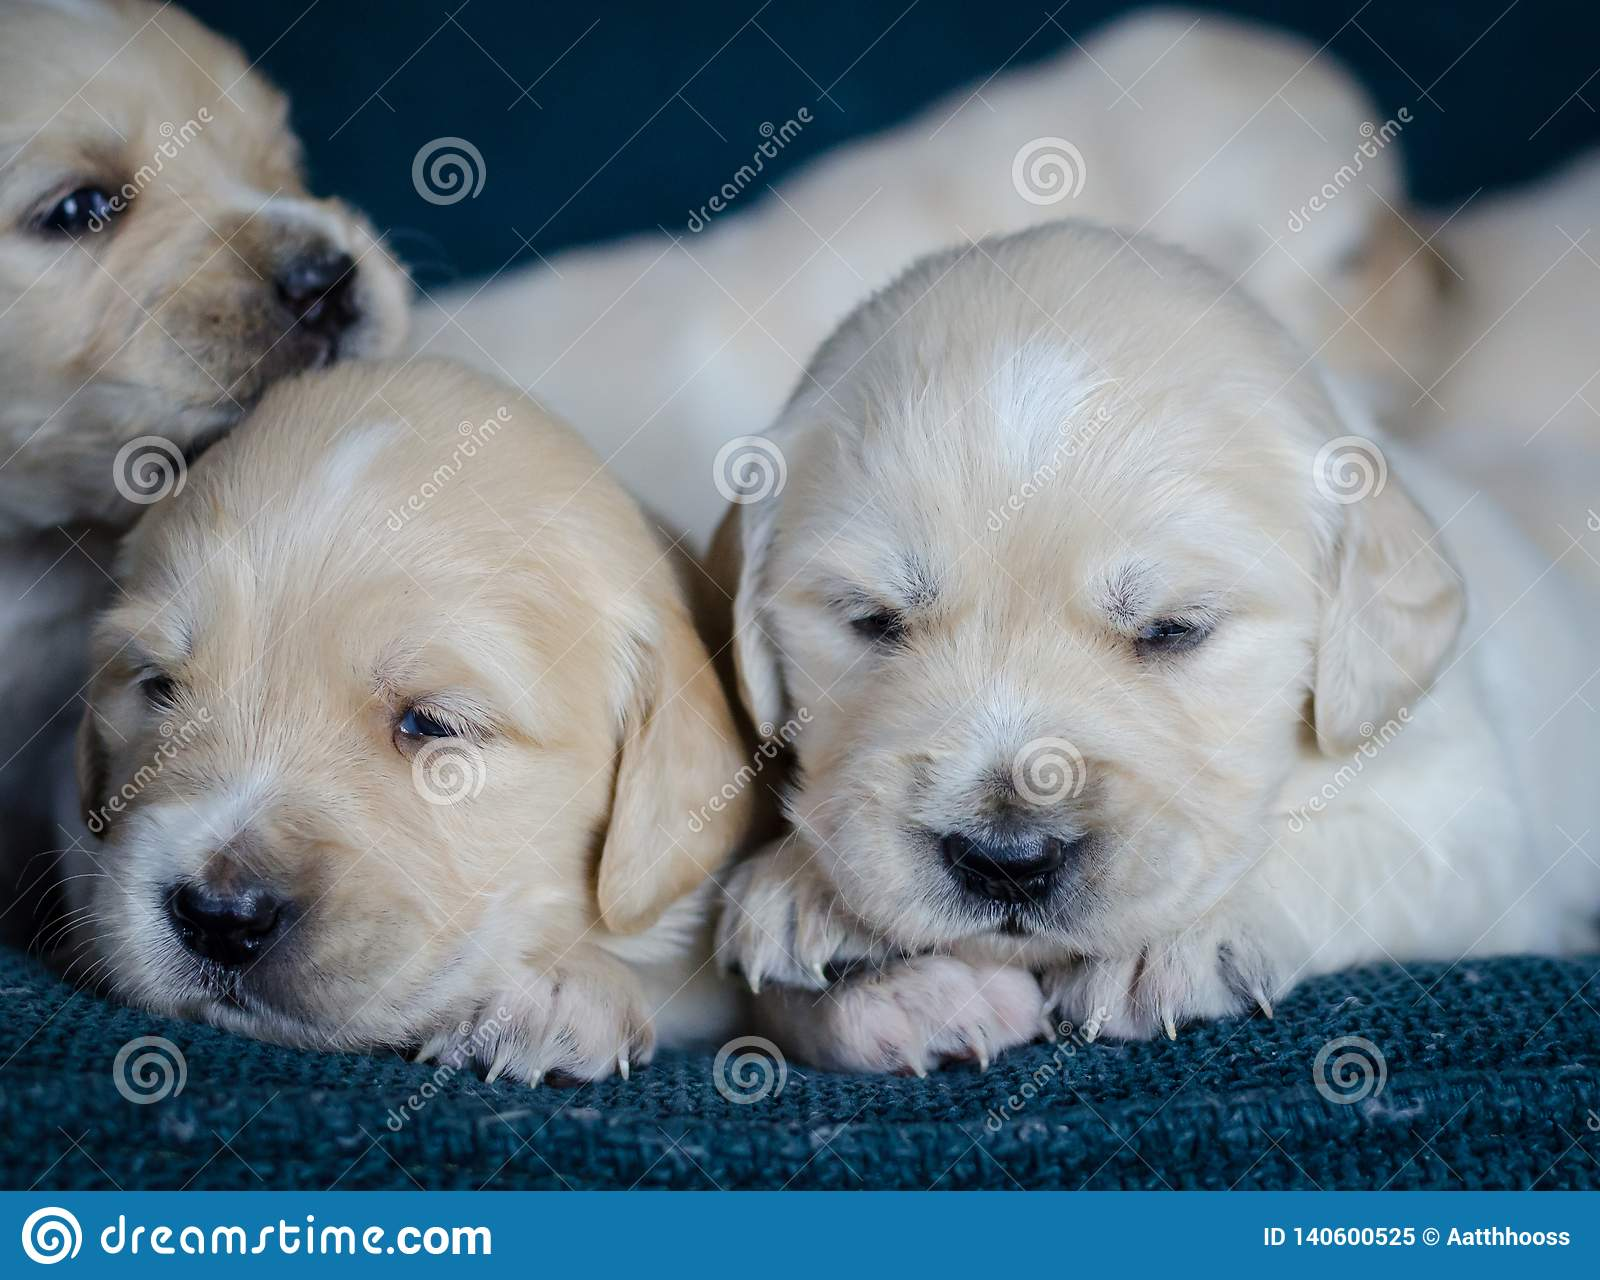 Portrait Of An Adorable Litter Of Golden Retriever Puppies Or Babies In A Blue Background Stock Image Image Of Litter Friend 140600525